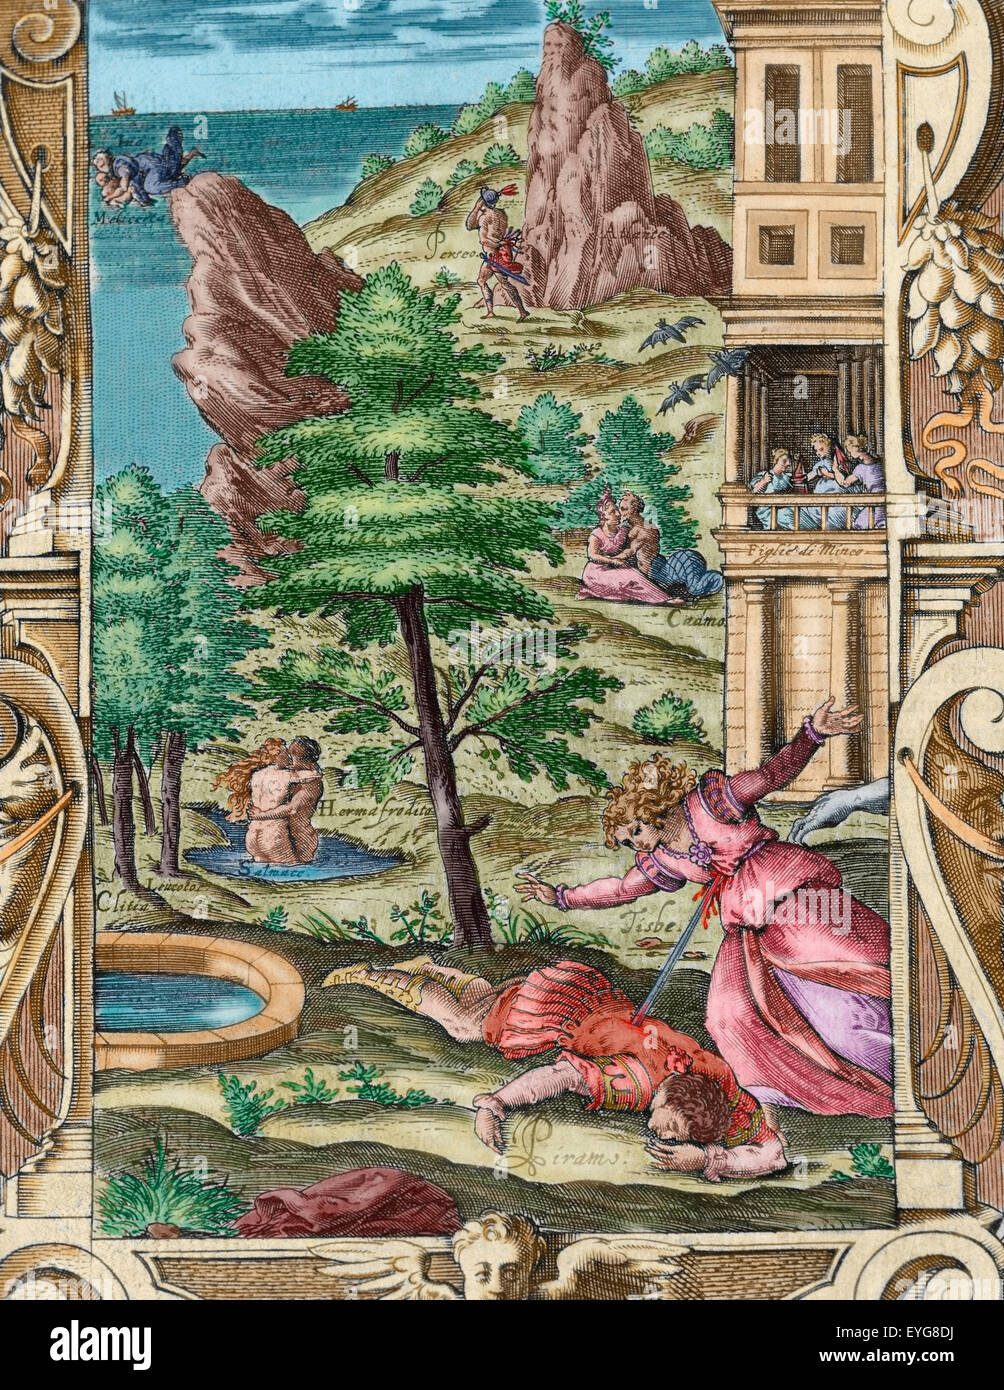 Ovid (Publius Ovidius Naso) (43 BC-17 AD). Latin poet. Metamorphoses 2-8 AD. Book IV. Engraving depicting the death of Pyramus and Thisbe. Italian edition. Venice, 1584. Colored. Stock Photo